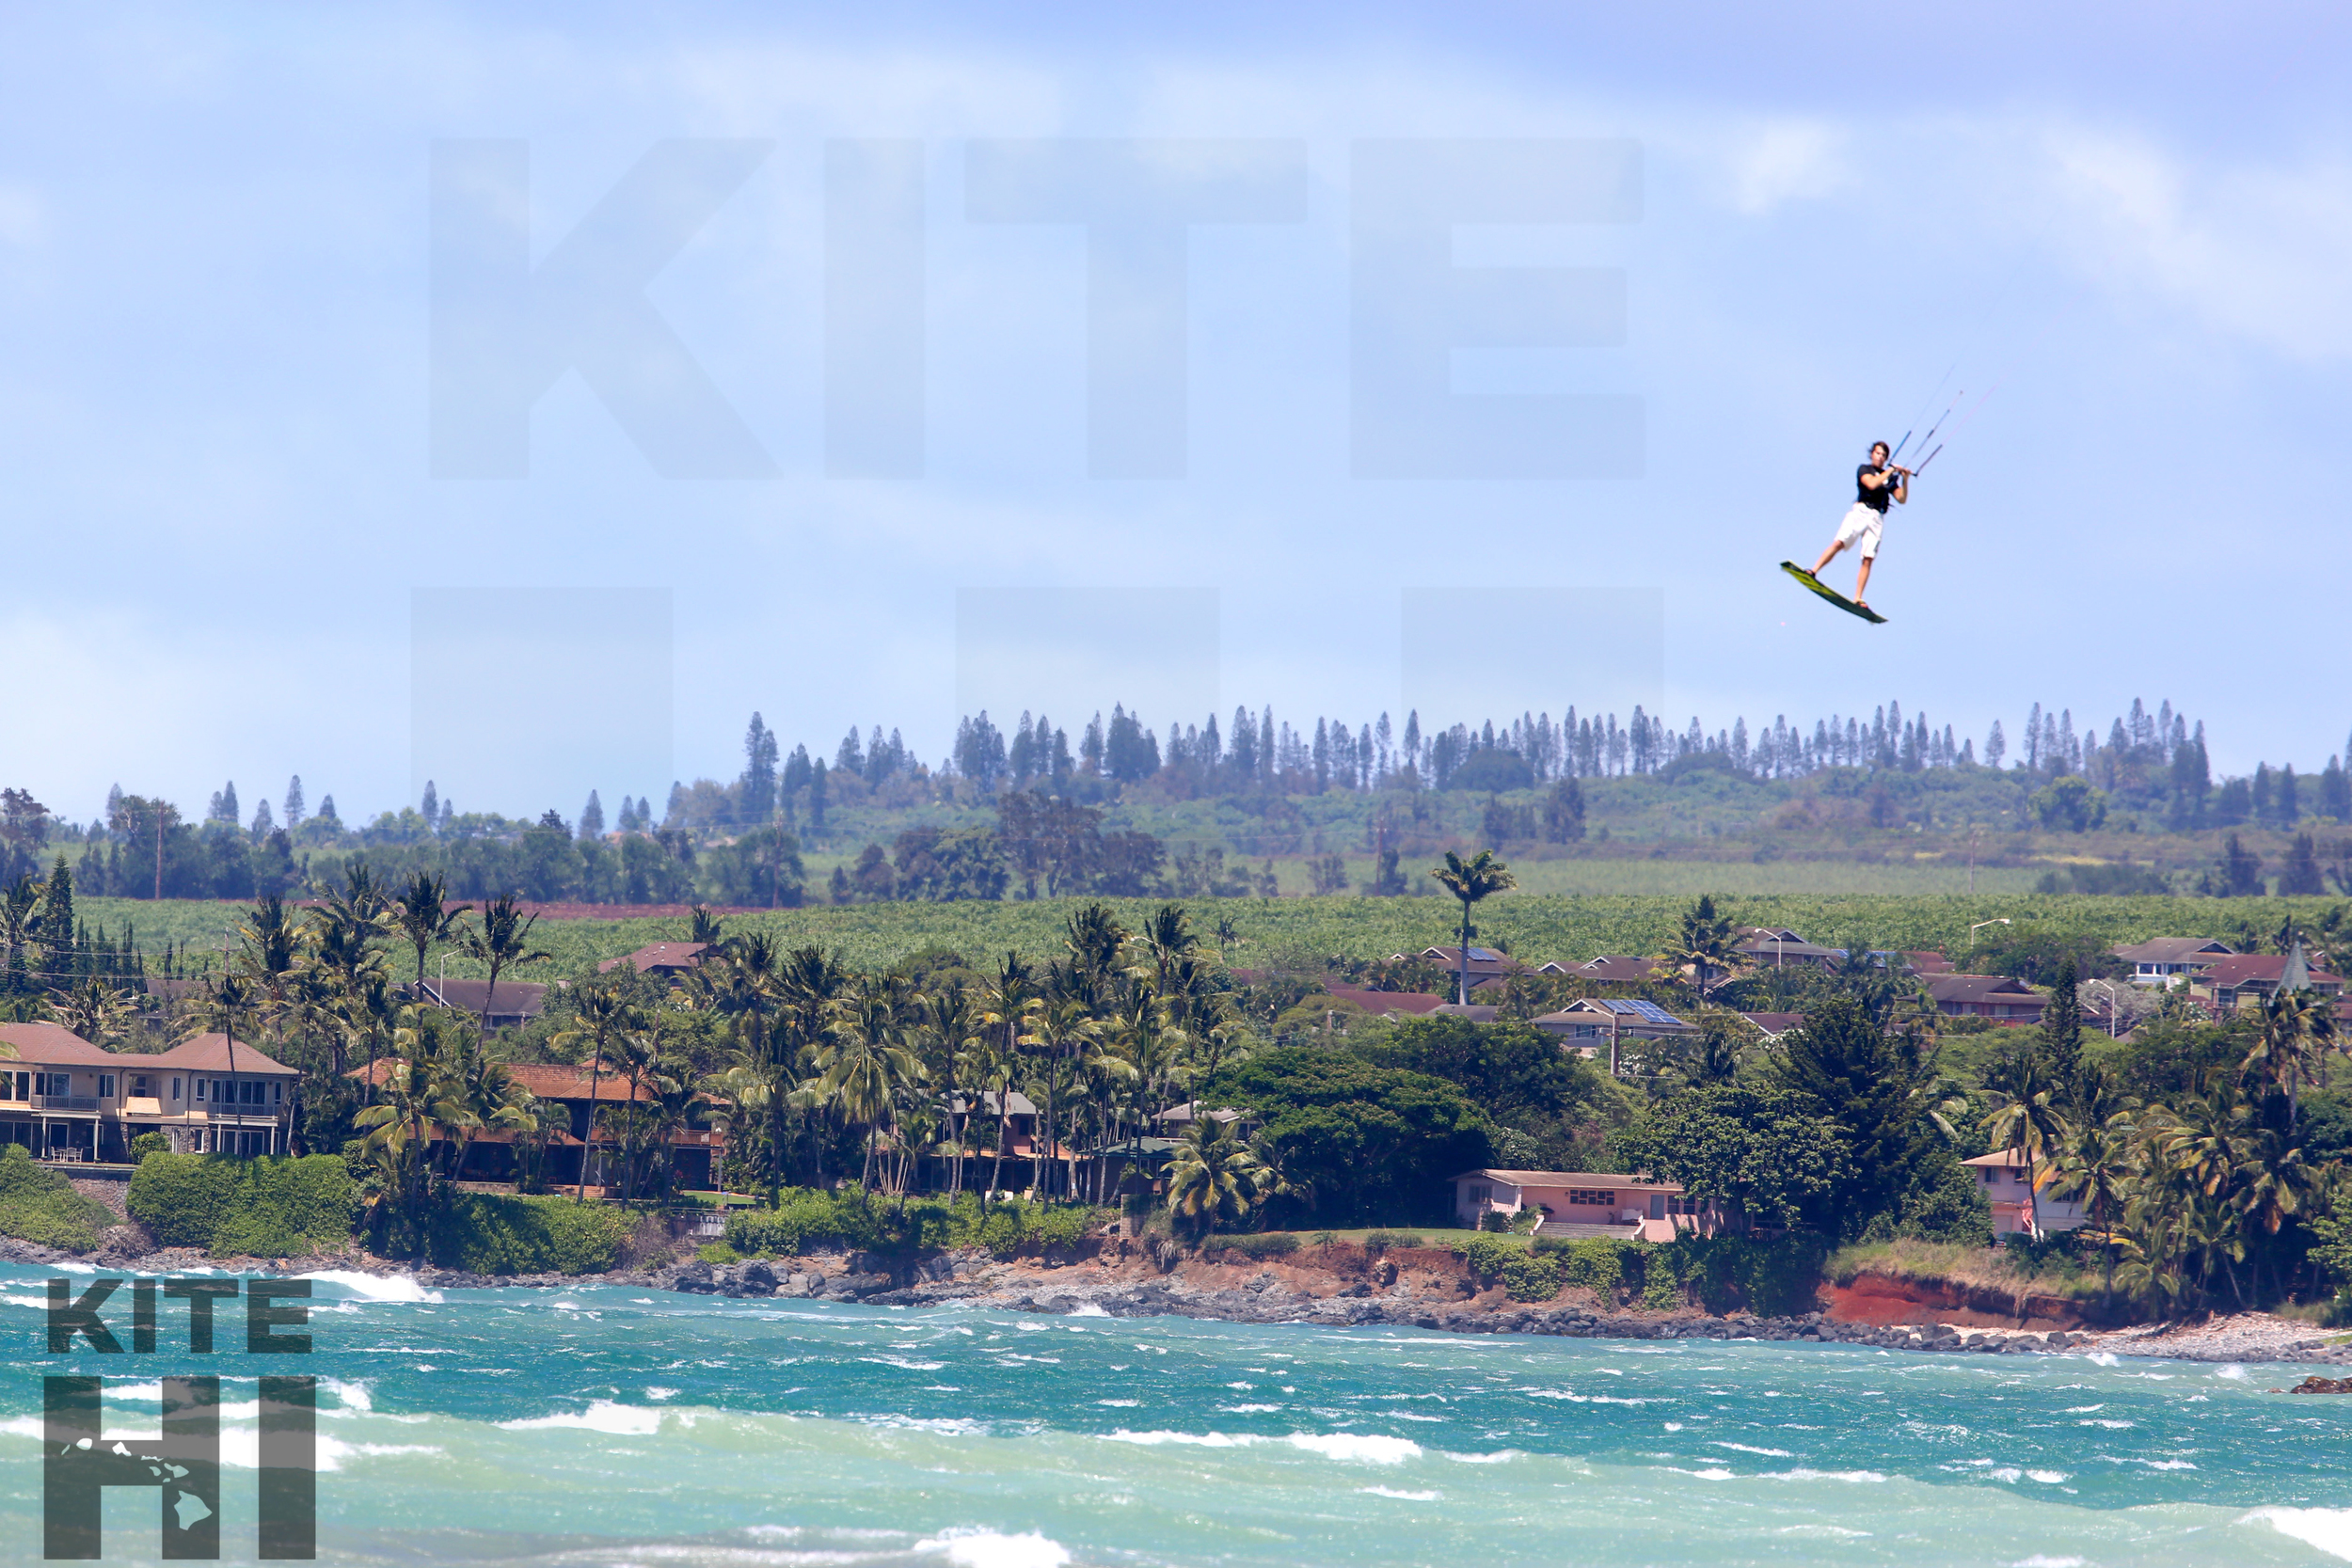 MAUI KITEBOARDING JON MCCABE- BALDWIN BEACH copy.jpg